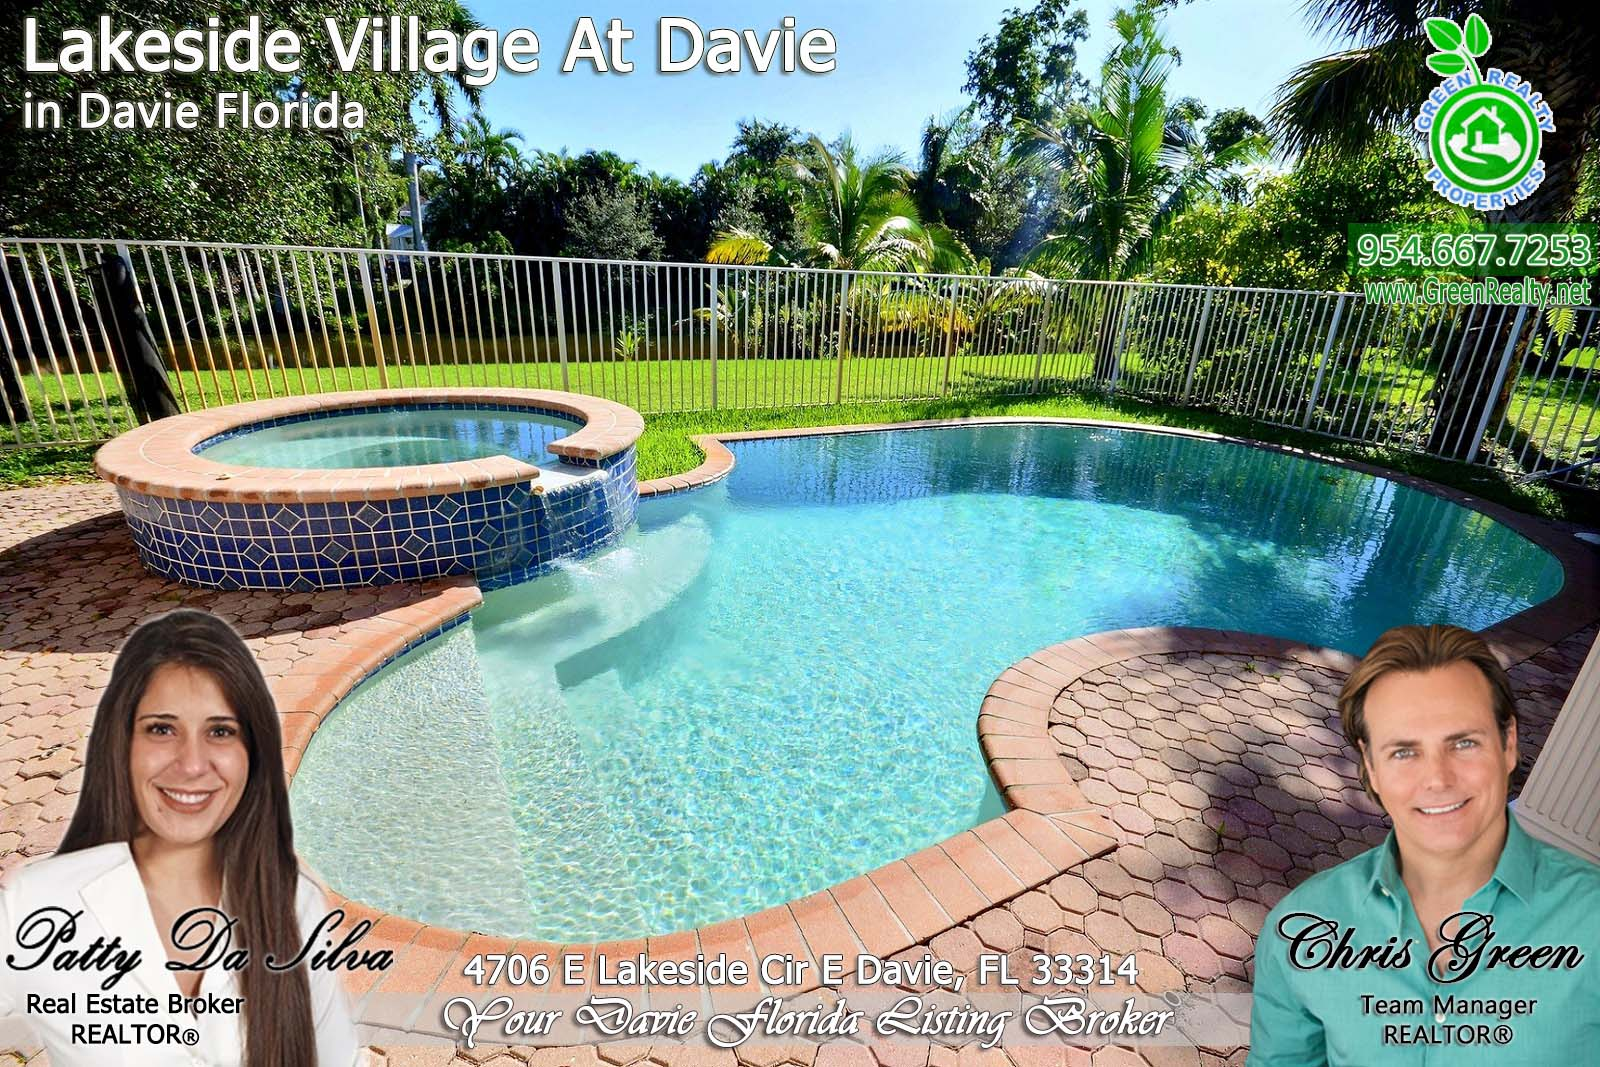 34 Homes For Sale in Davie Florida